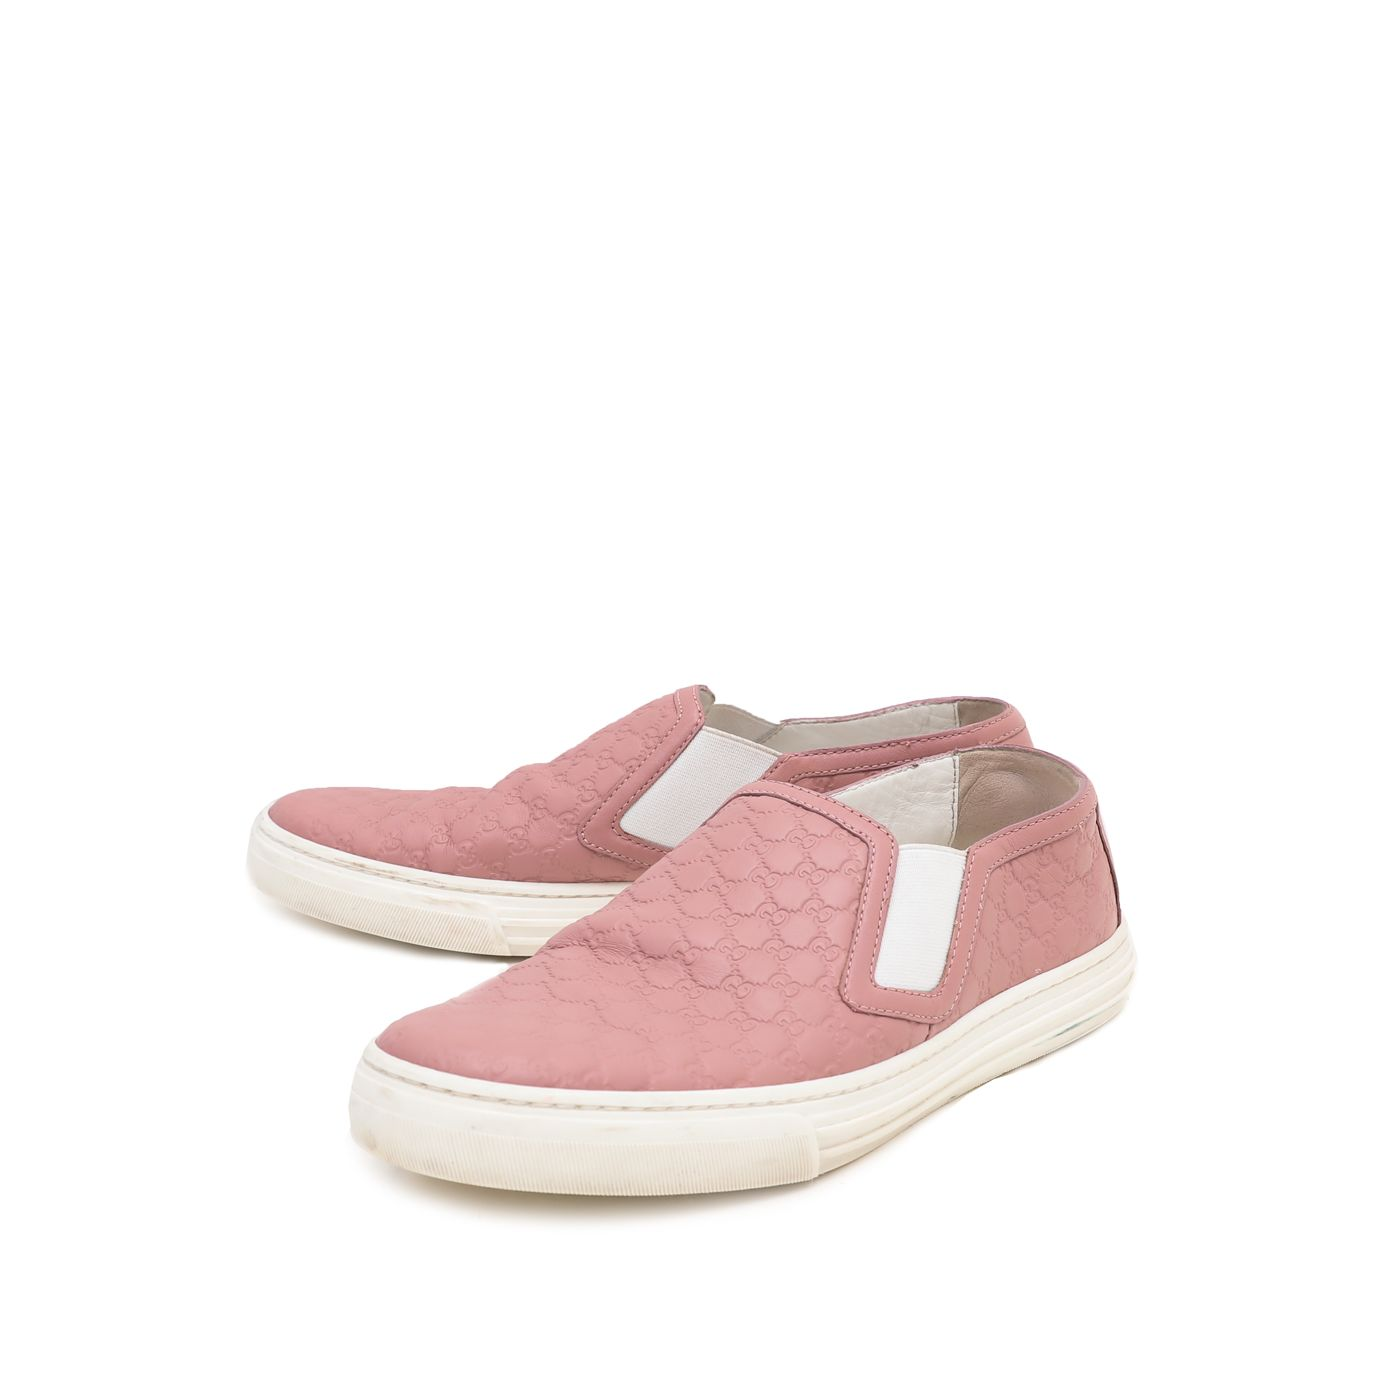 Gucci Dusty Pink Microguccissima Slip On Sneakers 36